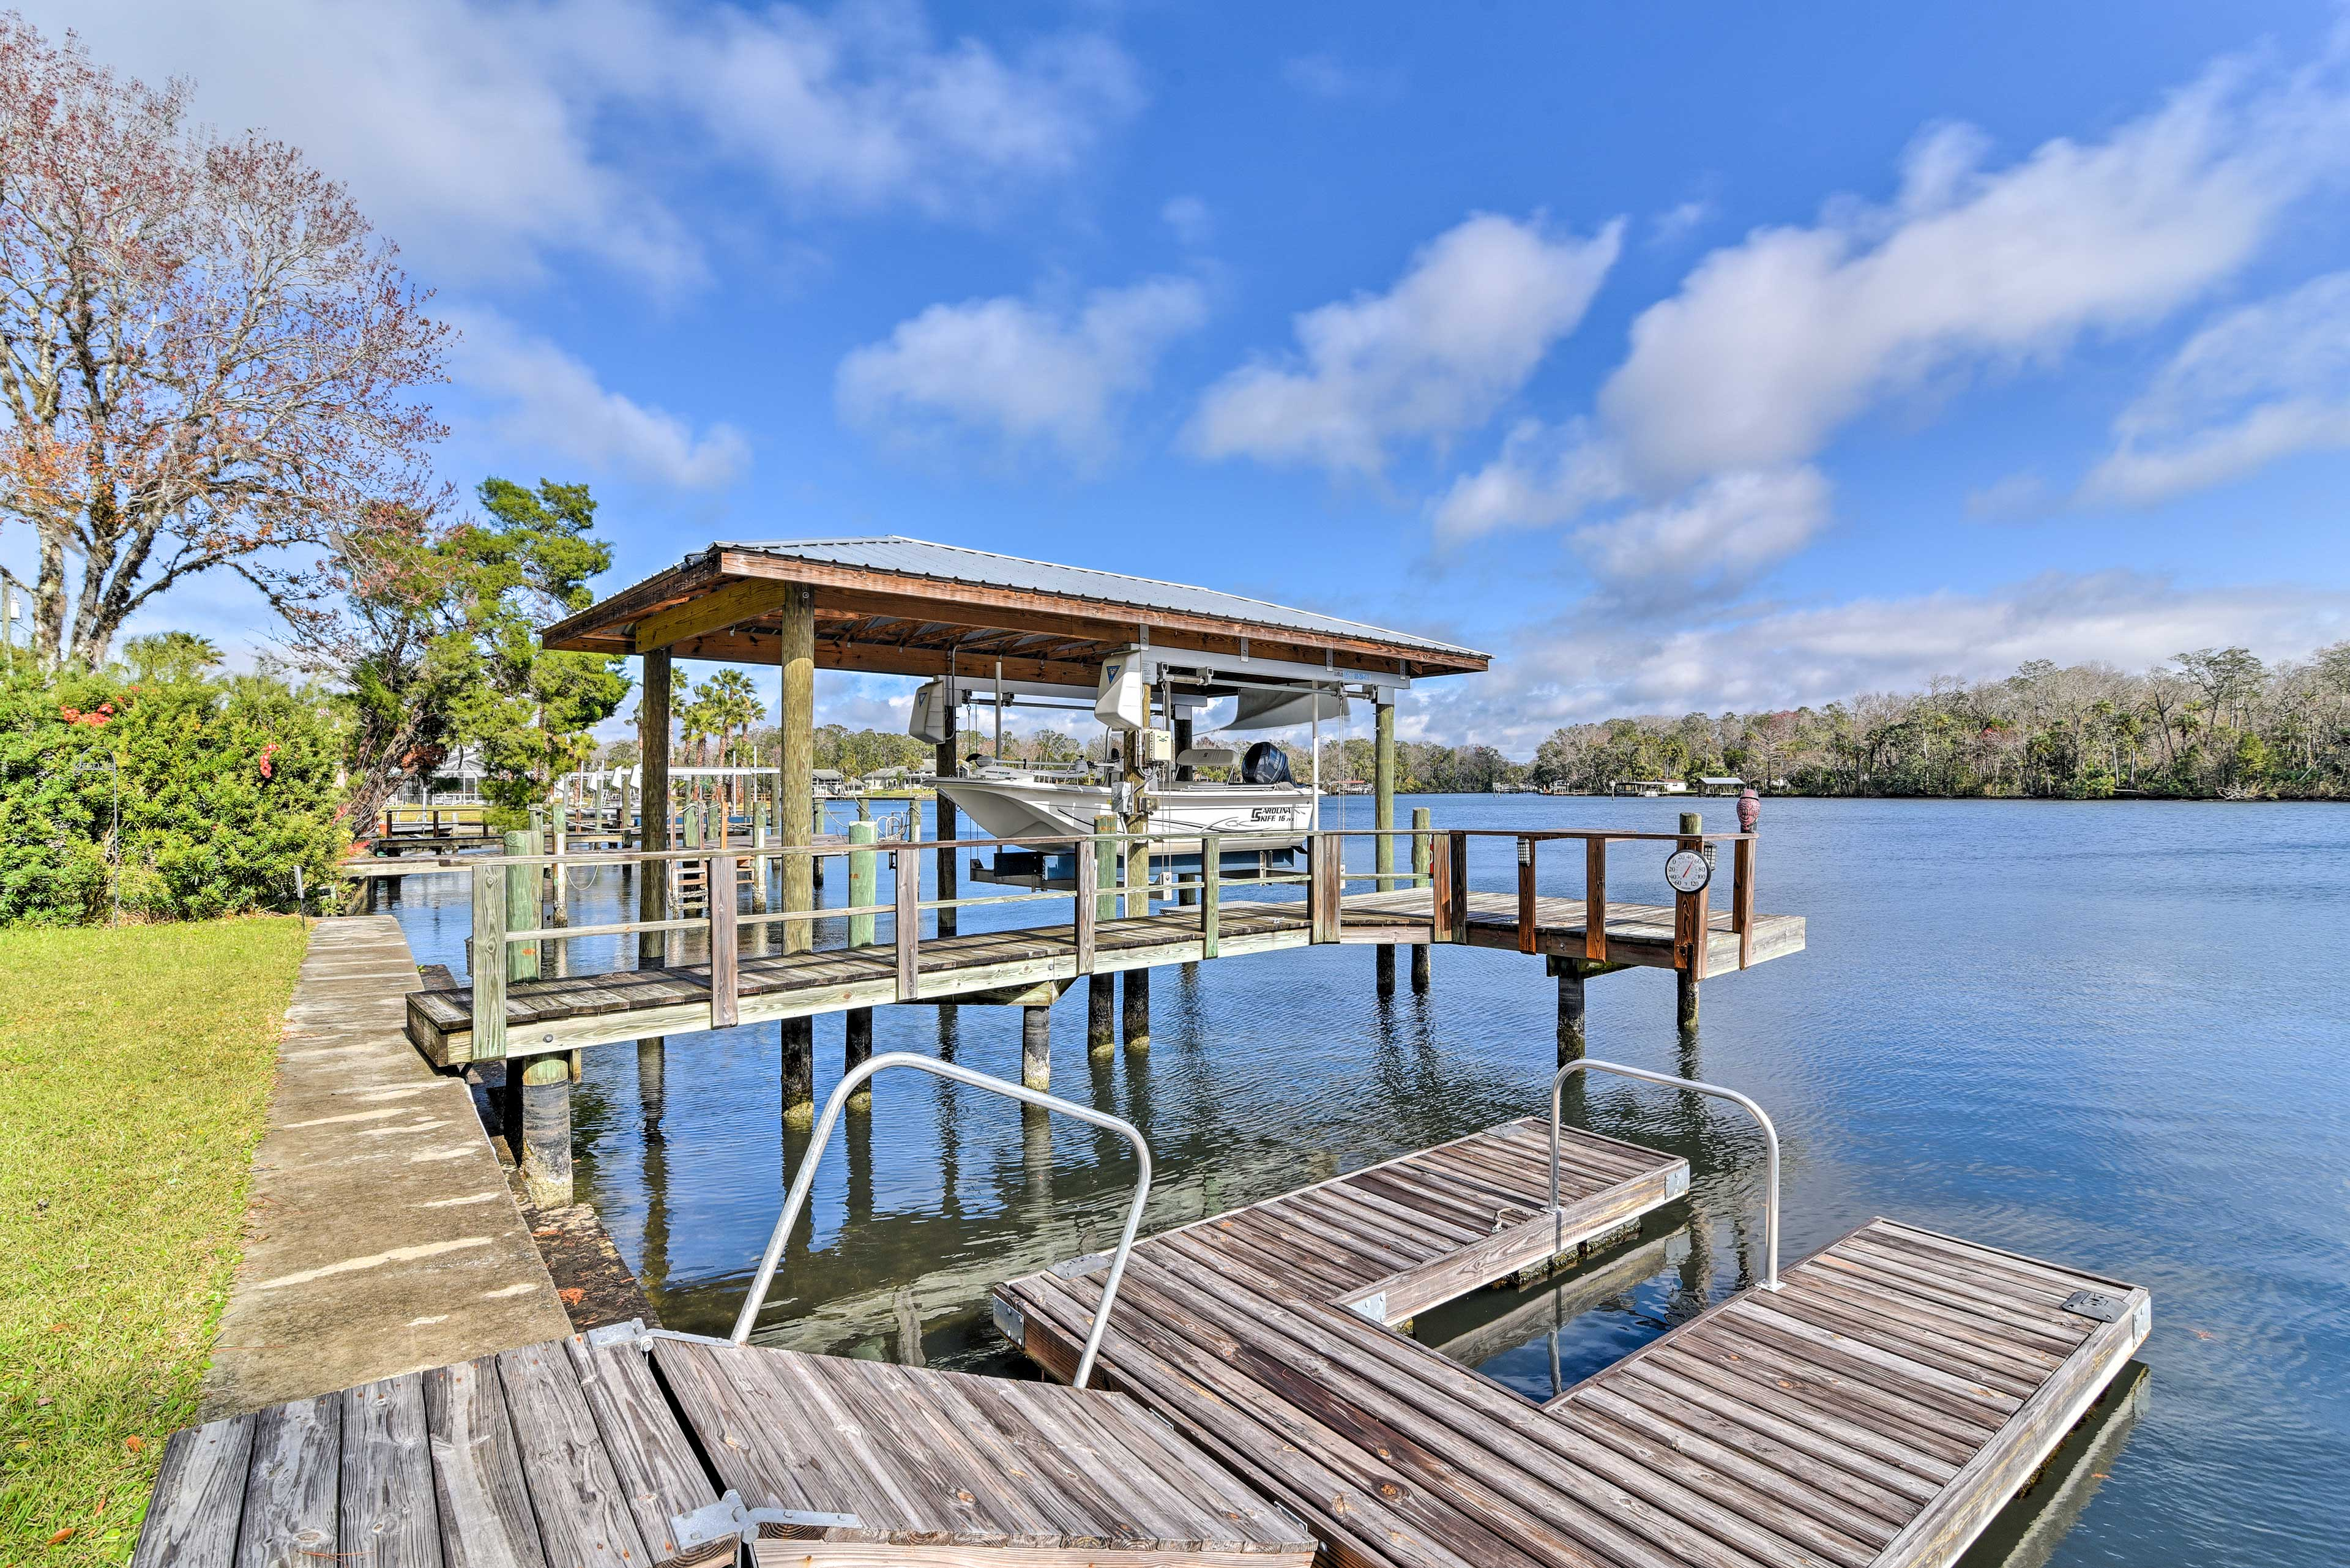 This home's large dock allows you to park your boat just steps away.